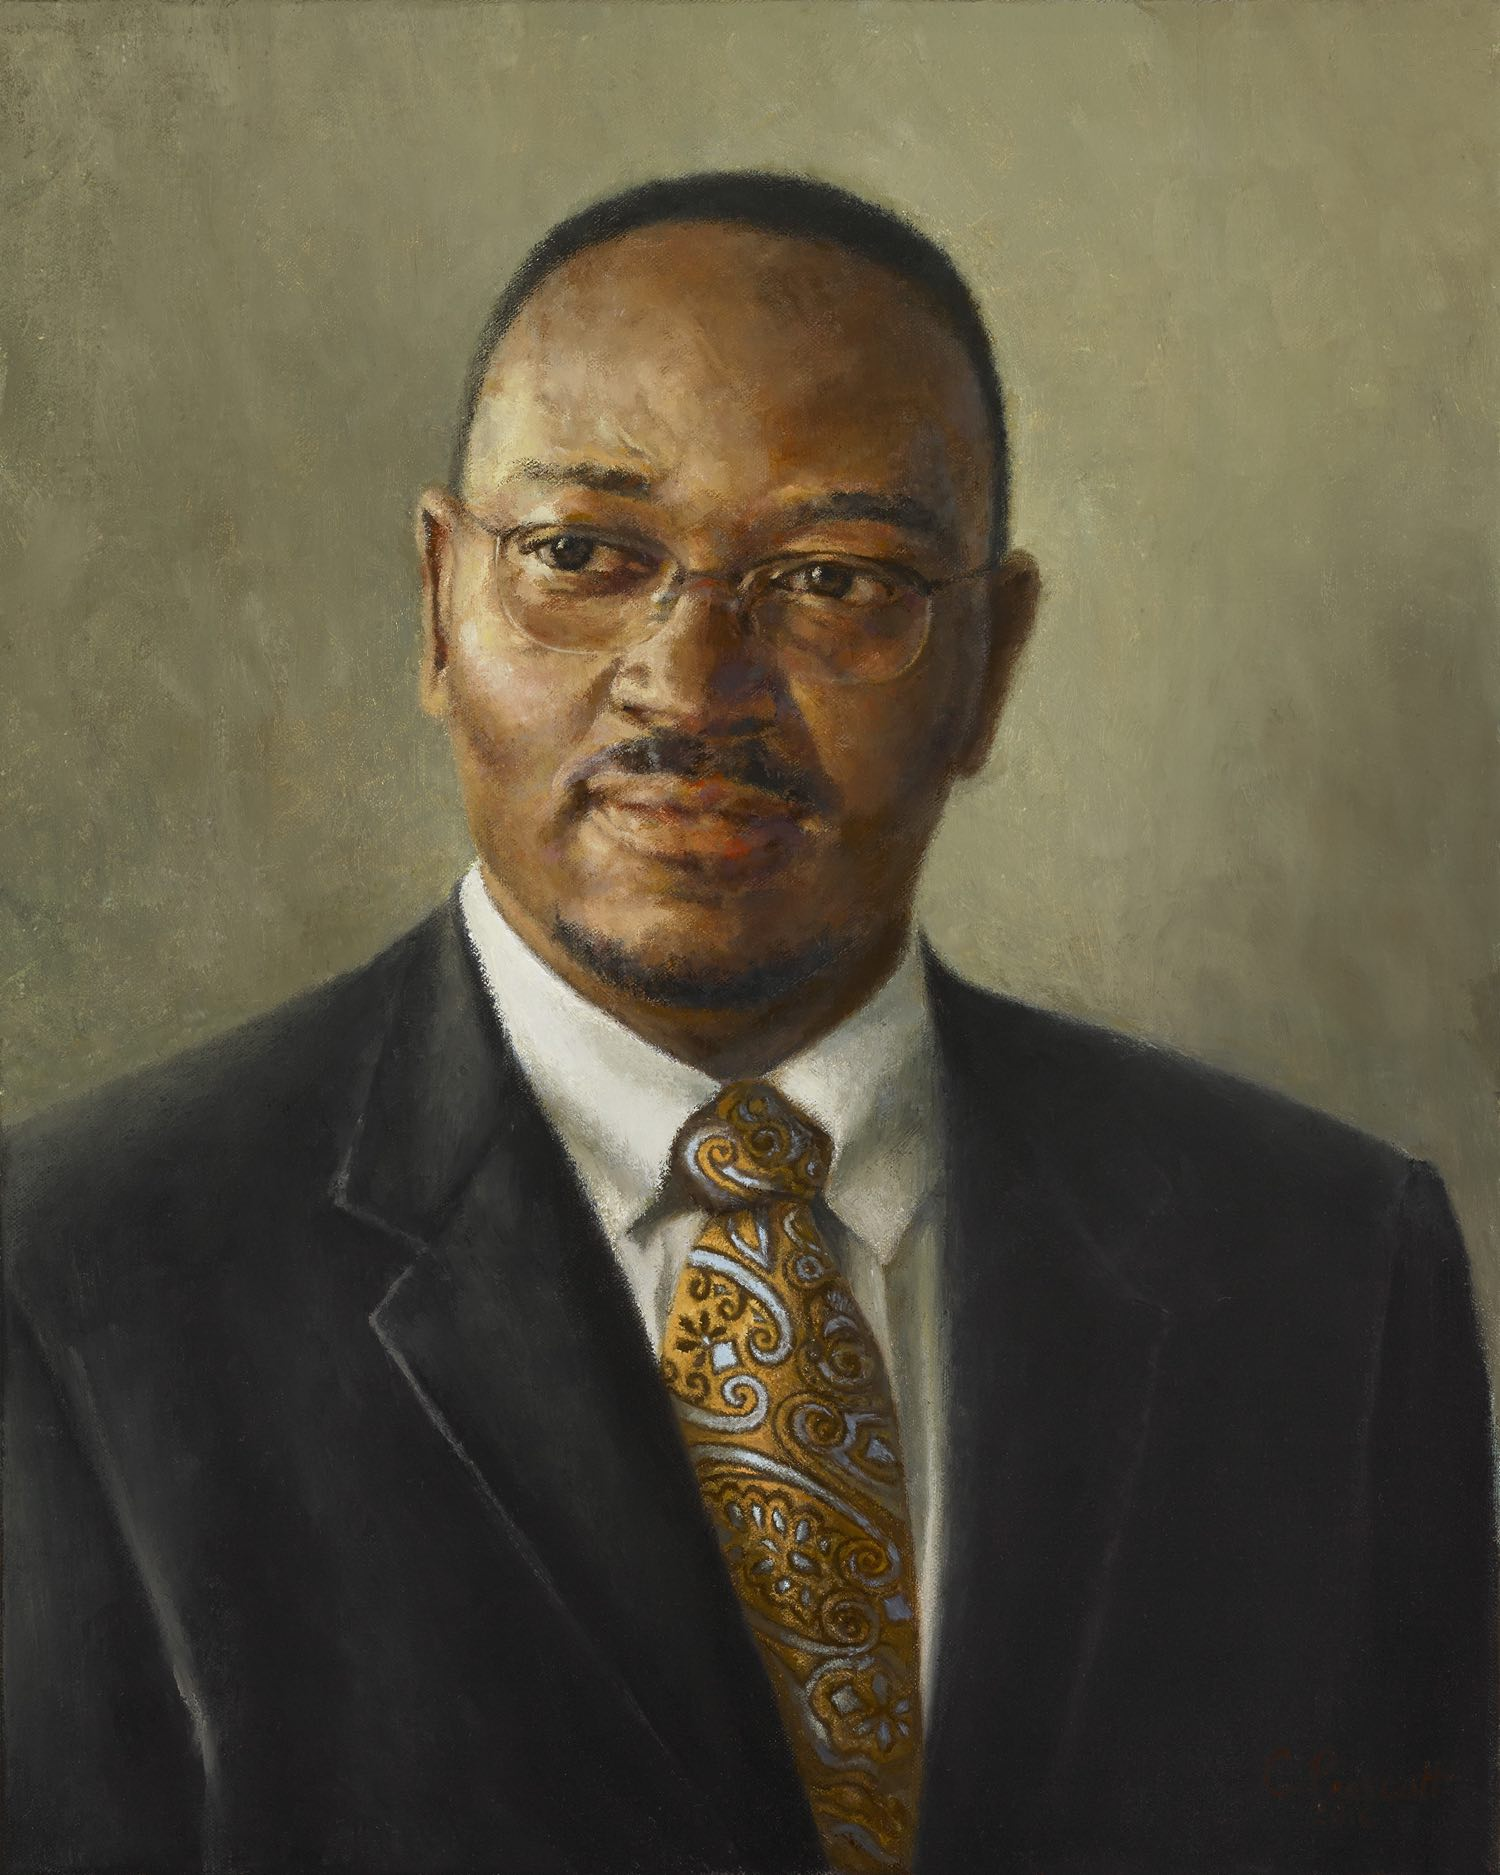 """The Honorable Reverend Clementa C. Pinckney, 2016, Oil on Canvas, 20"""" x 16"""""""